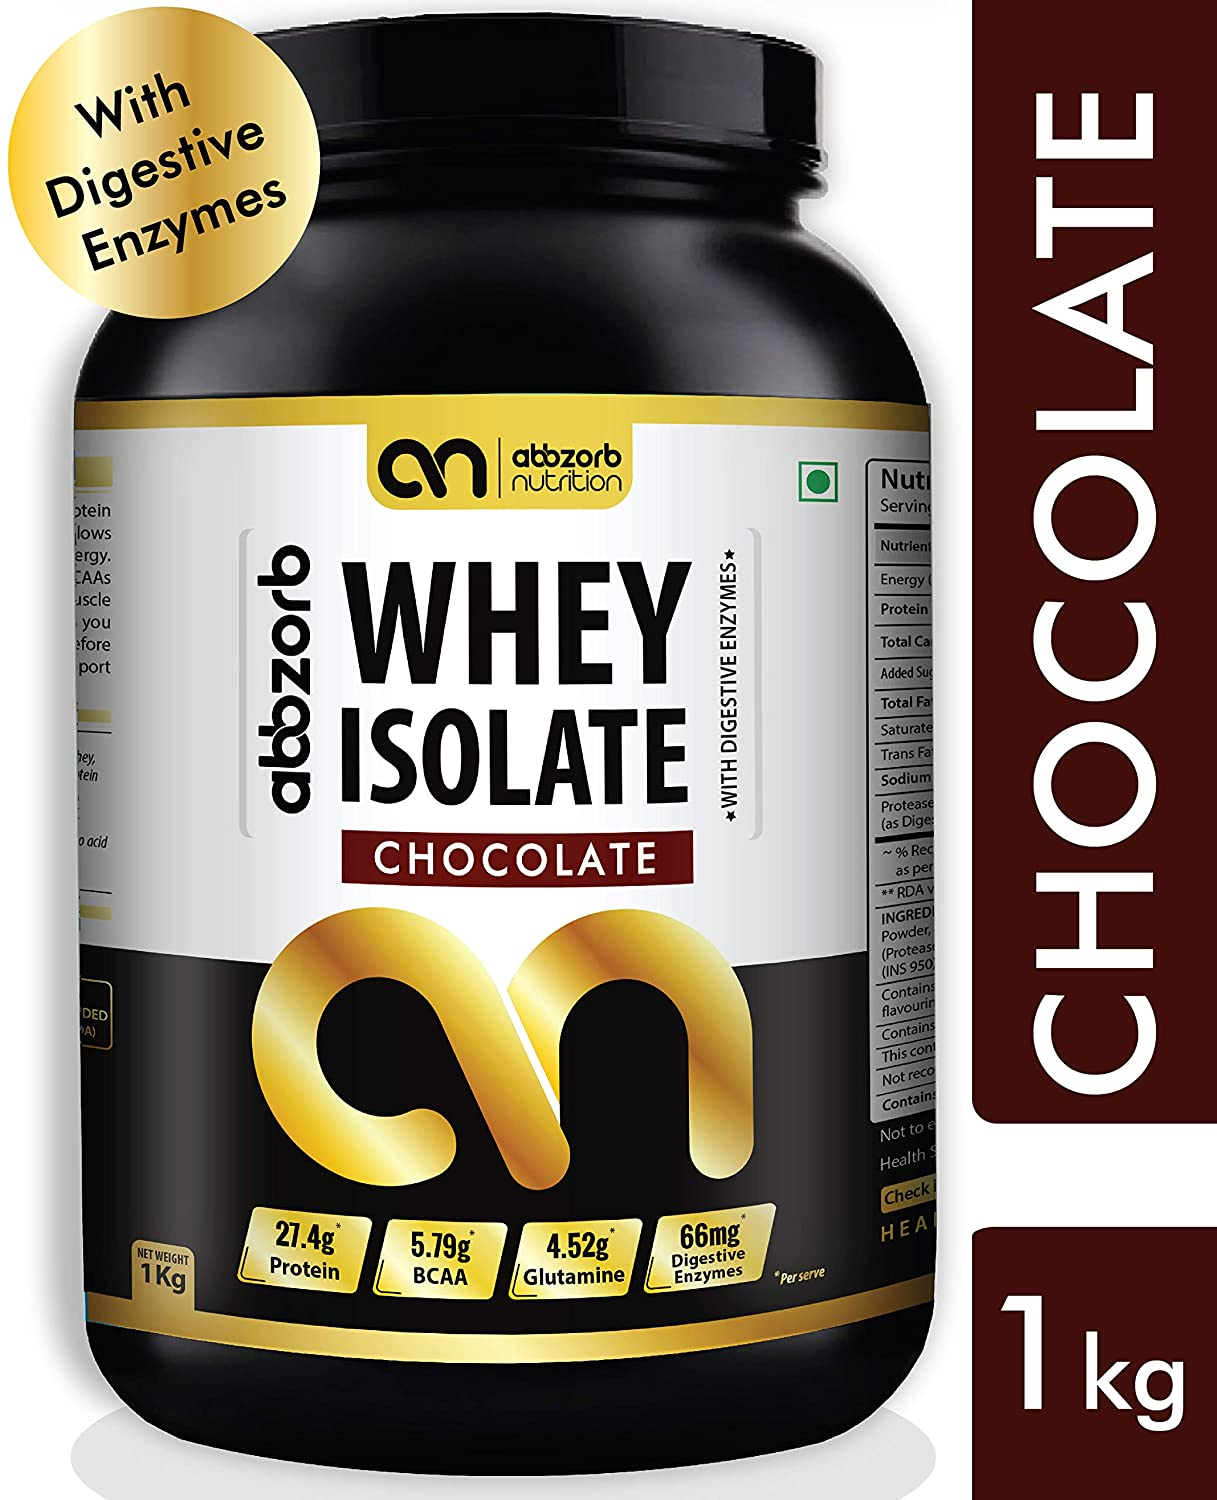 Abbzorb Nutrition Whey Protein Isolate